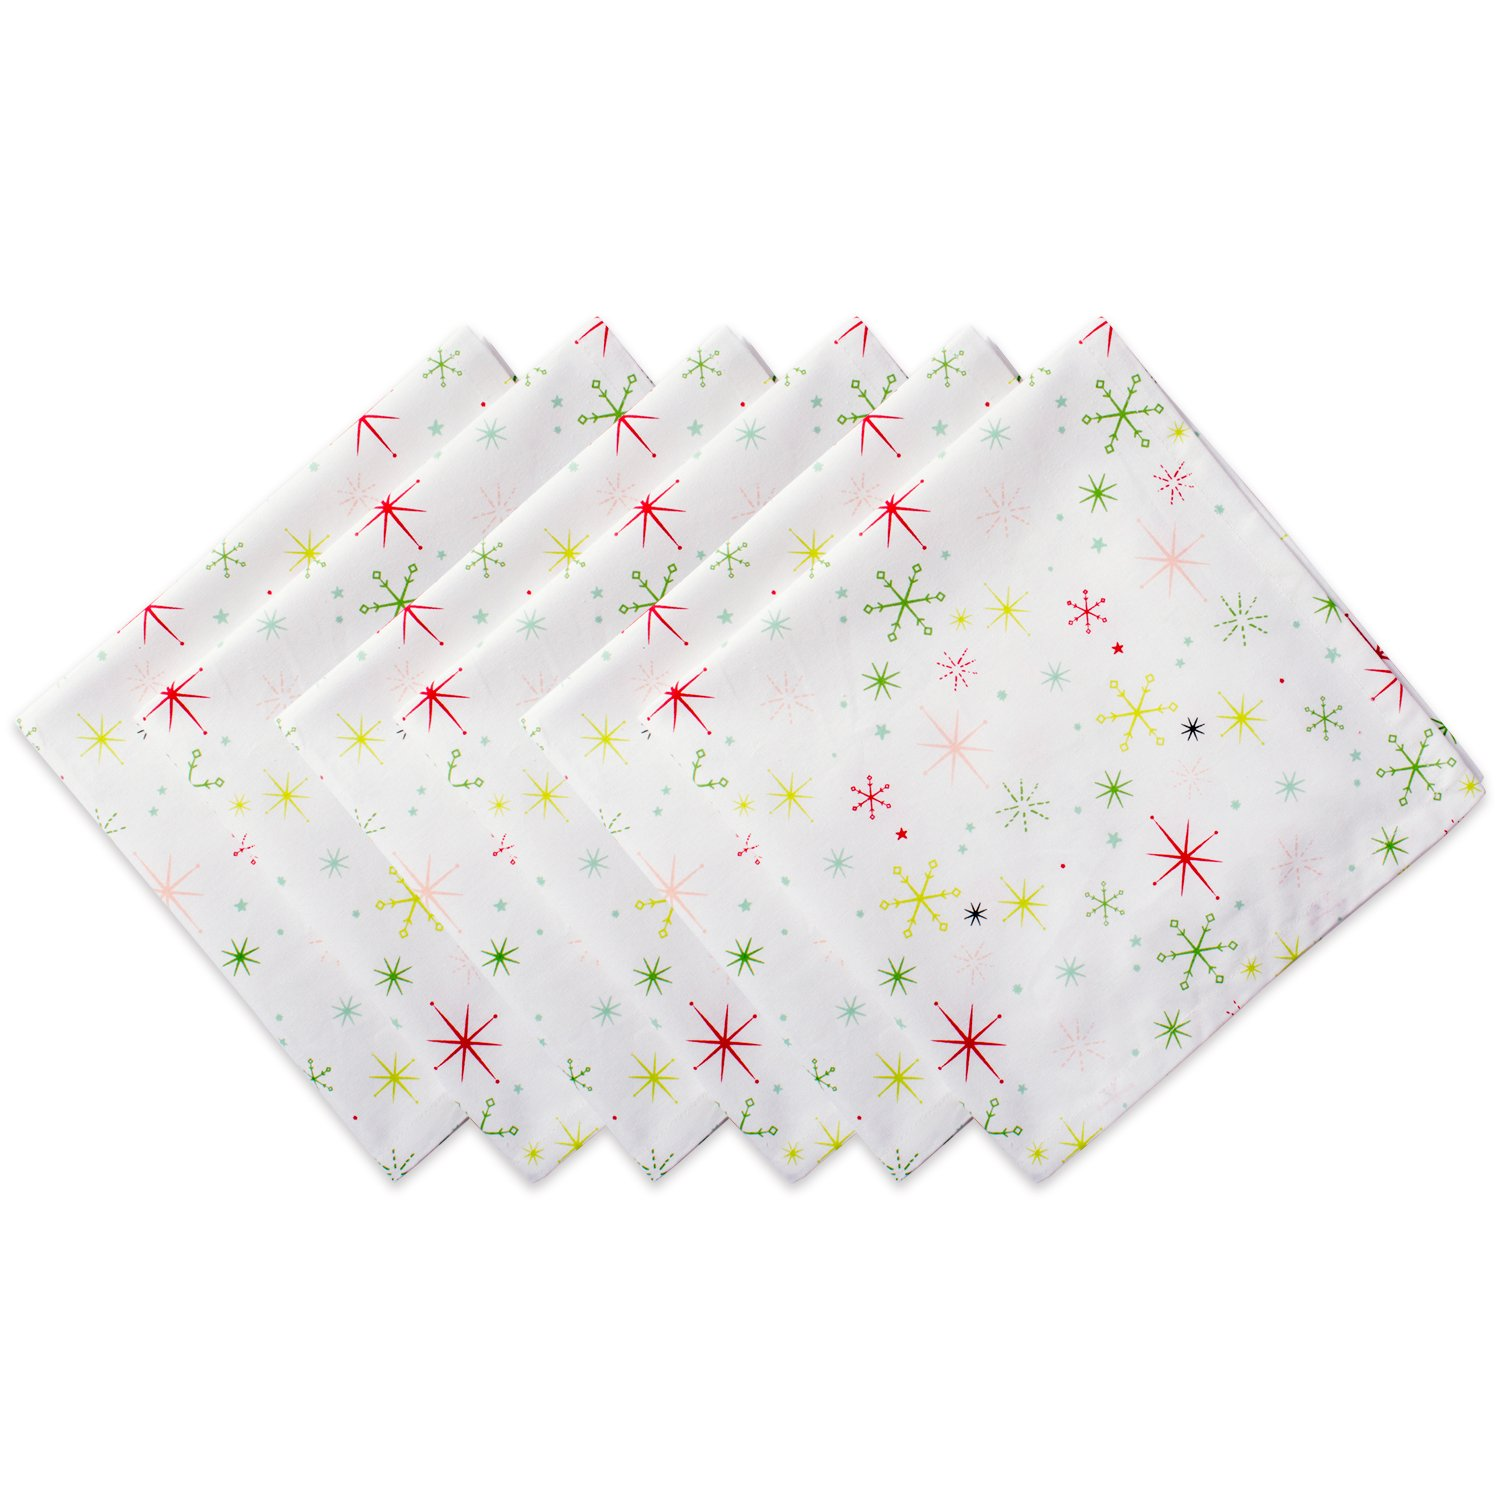 Woodland Christmas Dinner and Holiday Tablecloth Machine Washable DII 100/% Cotton 60x120 Seats 10 to 12 People 60x120 Seats 10 to 12 People CAMZ38054 Dinner and Holiday Tablecloth